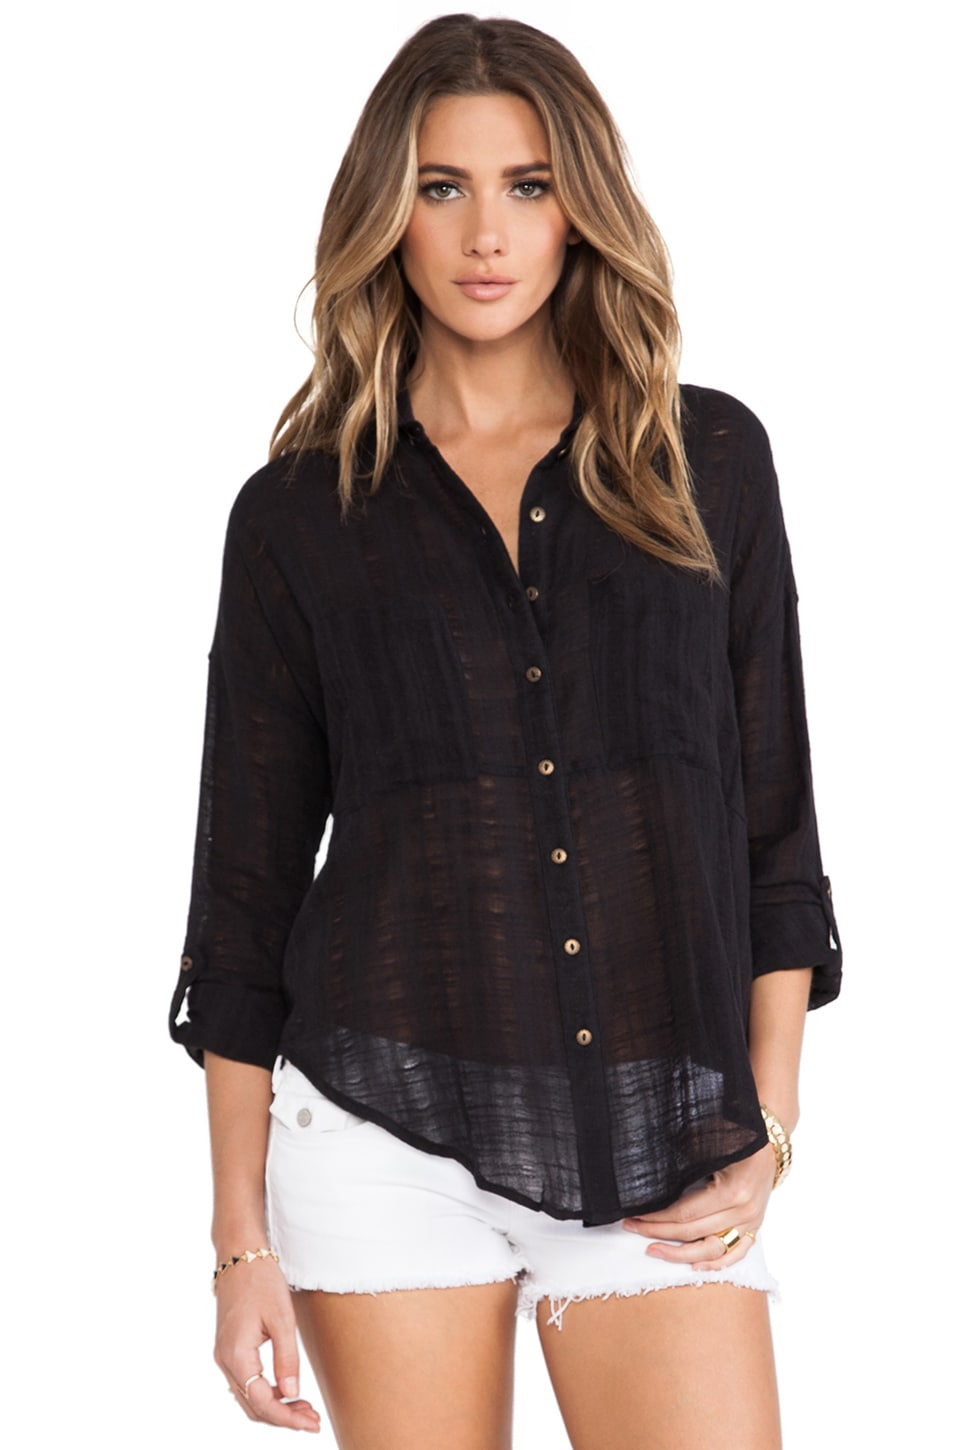 Free People Shibori Siren Buttondown Top in Black